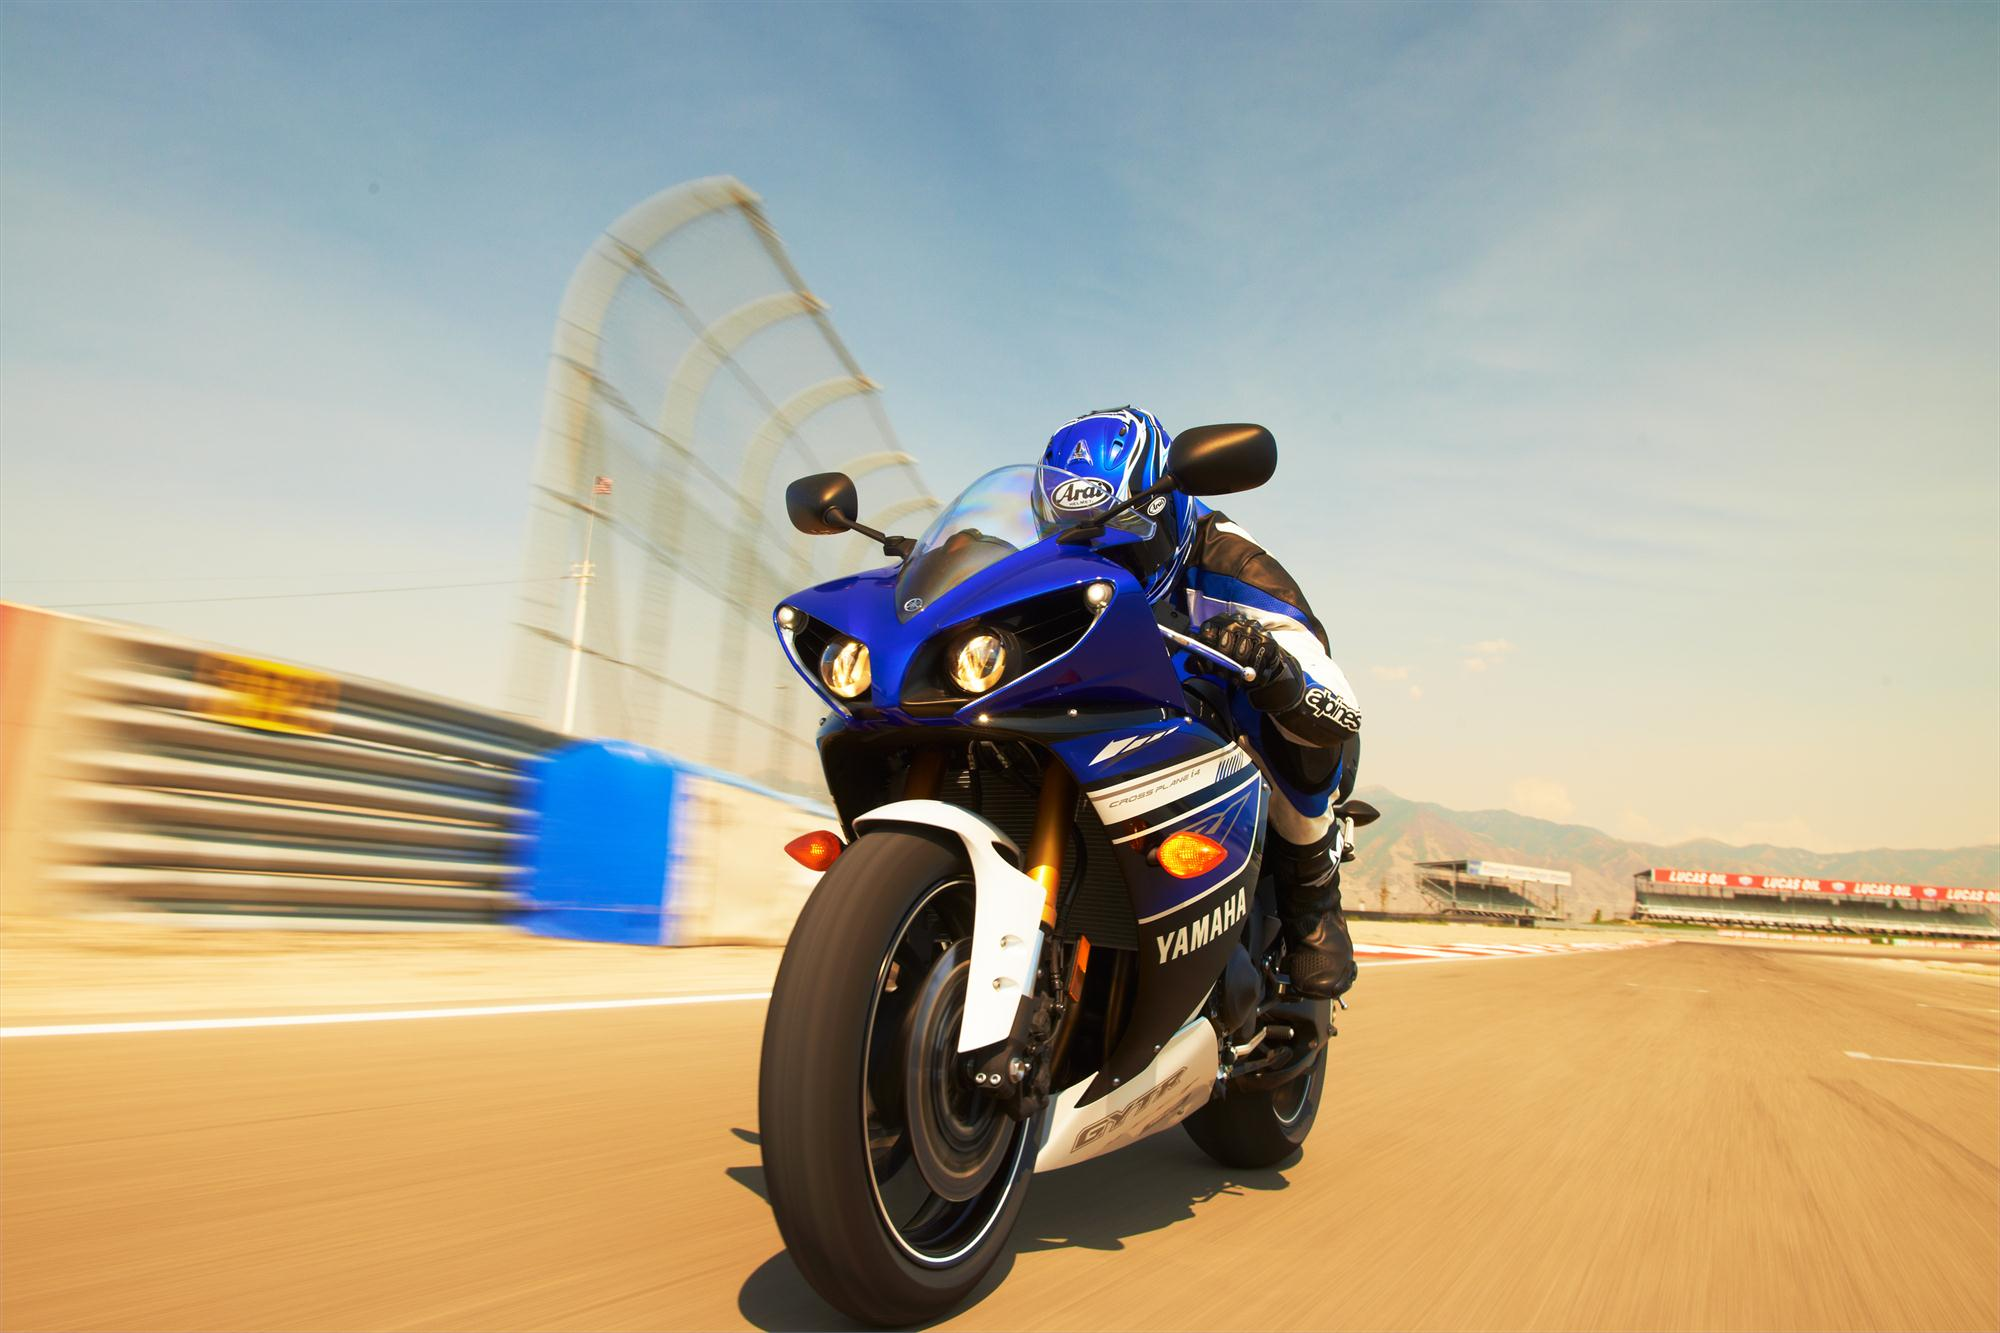 2013 Yamaha YZF-R1 Even More Aggressive Than Before - Photo Gallery